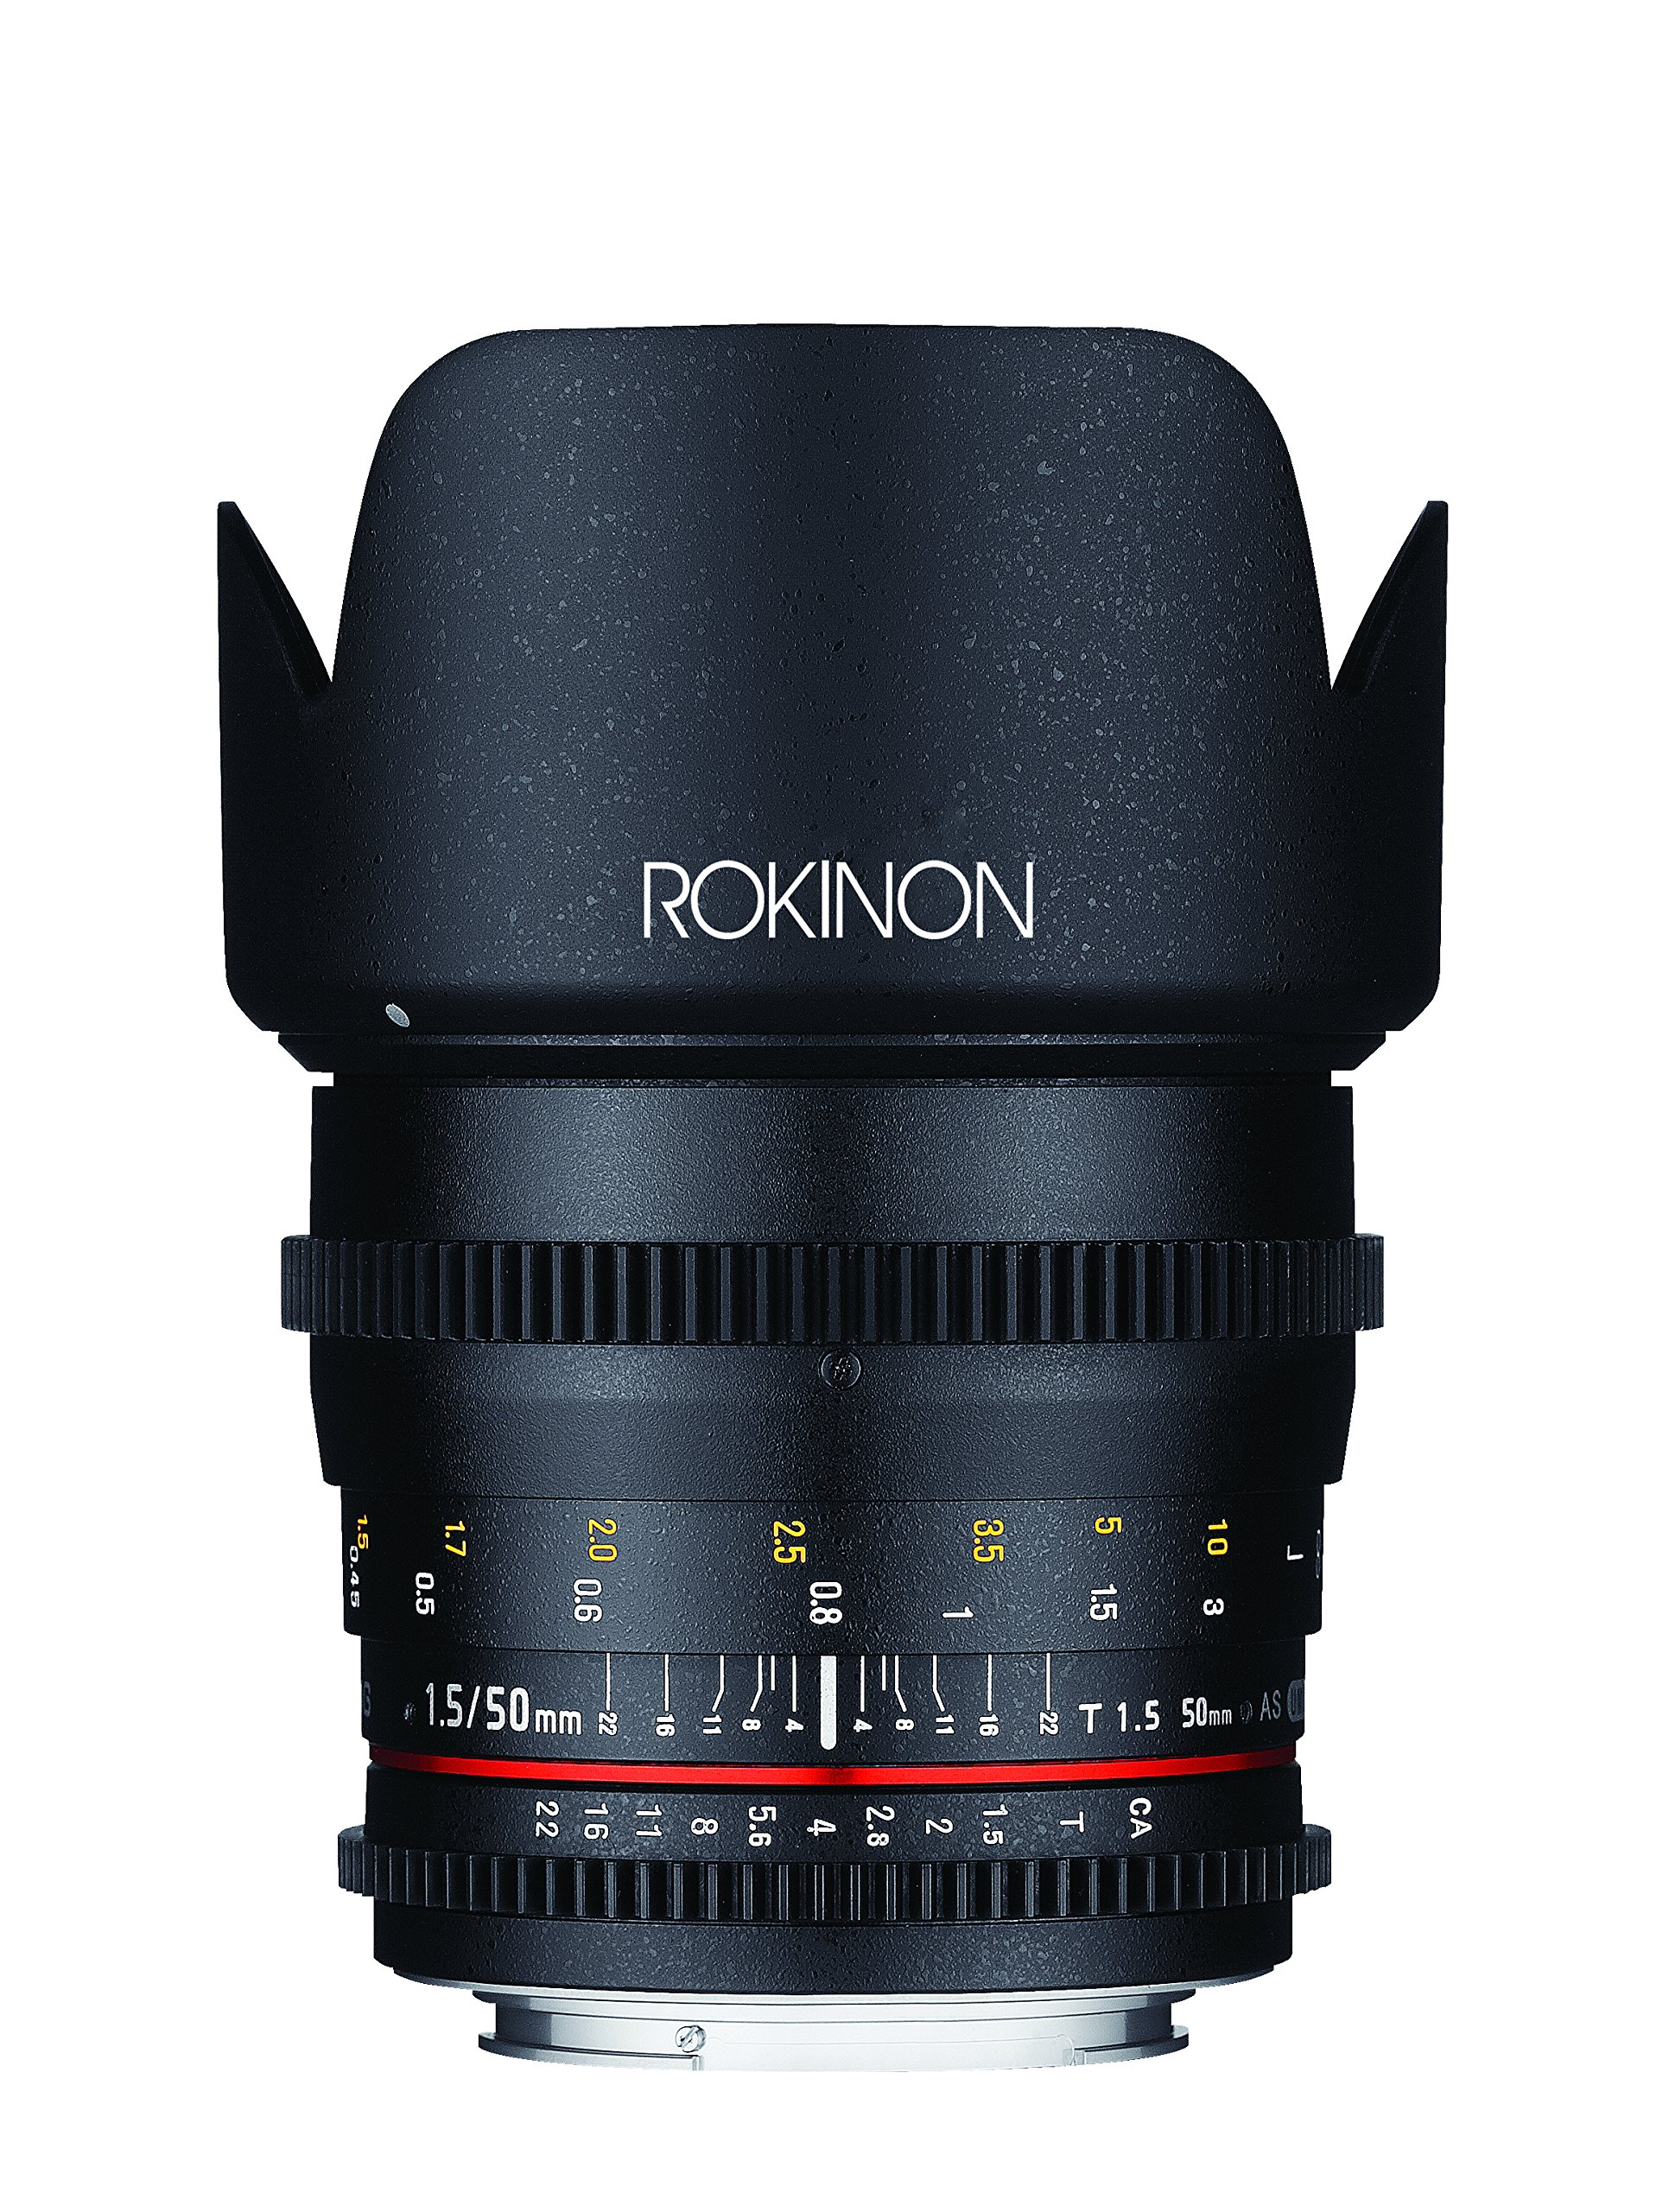 Rokinon Cine DS 50mm T1.5 AS IF UMC Full Frame Cine Lens for Nikon by Rokinon